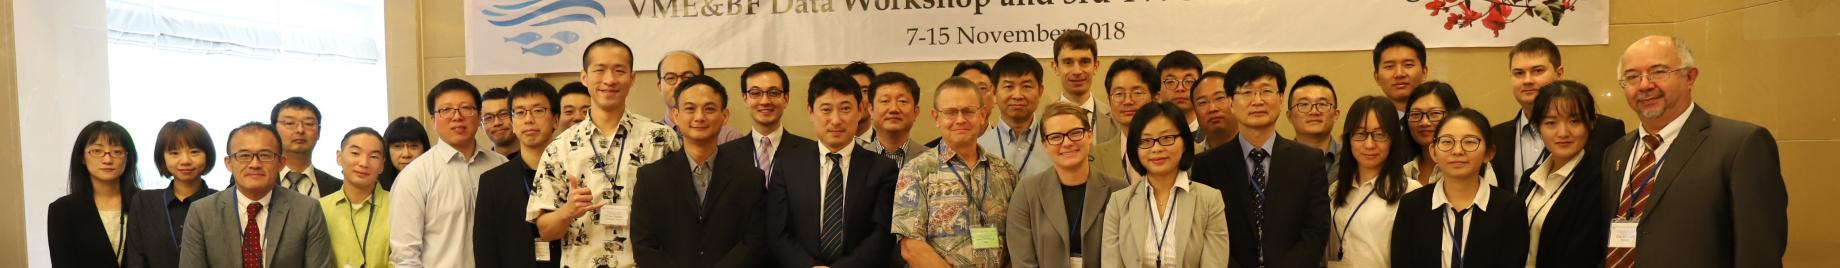 3rd TWG PSSA Meeting - Xiamen, China